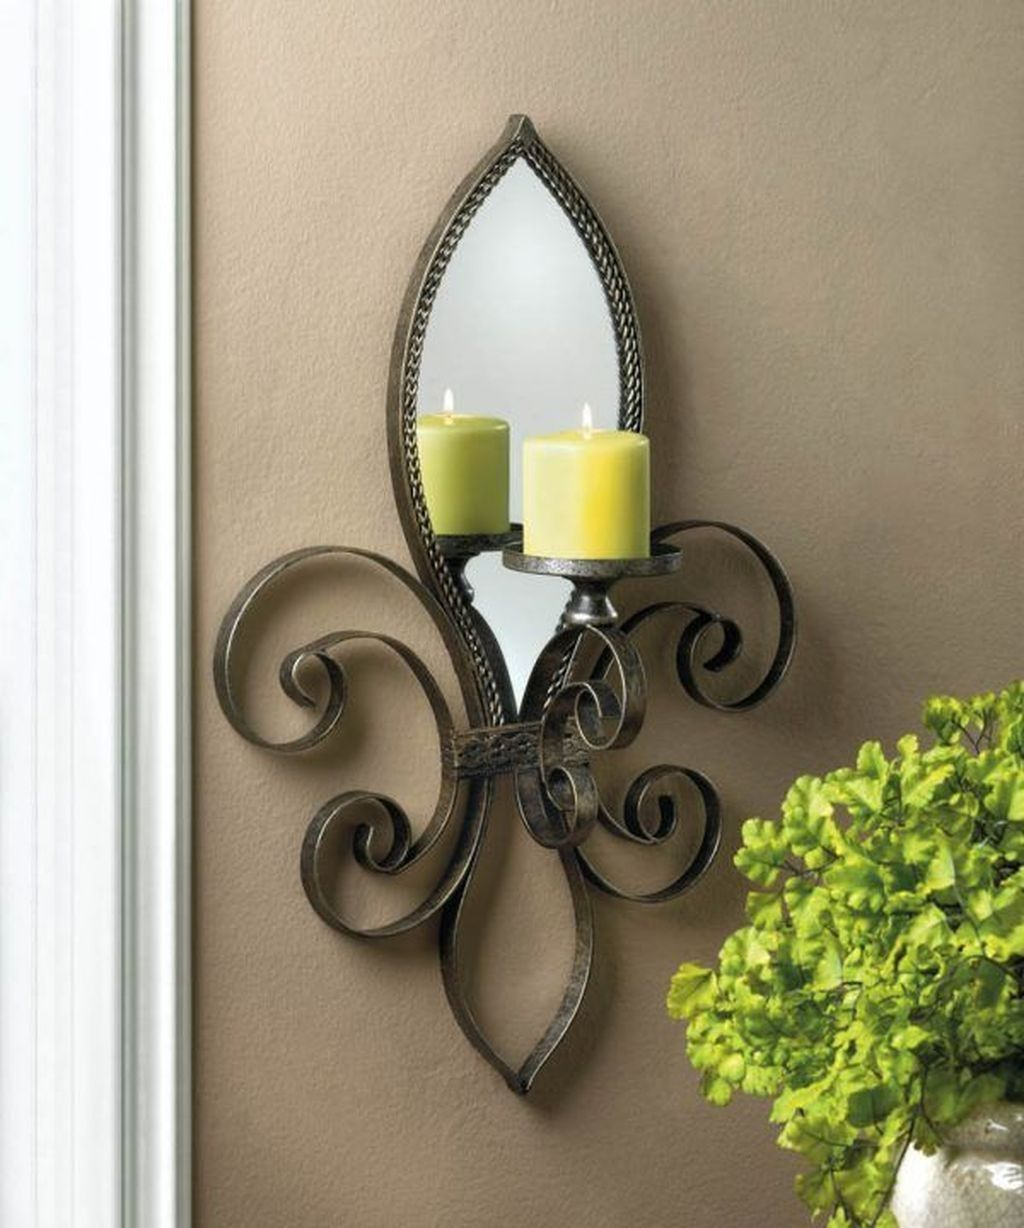 37 Impressive Traditional Wall Sconces Decor Ideas For Living Room